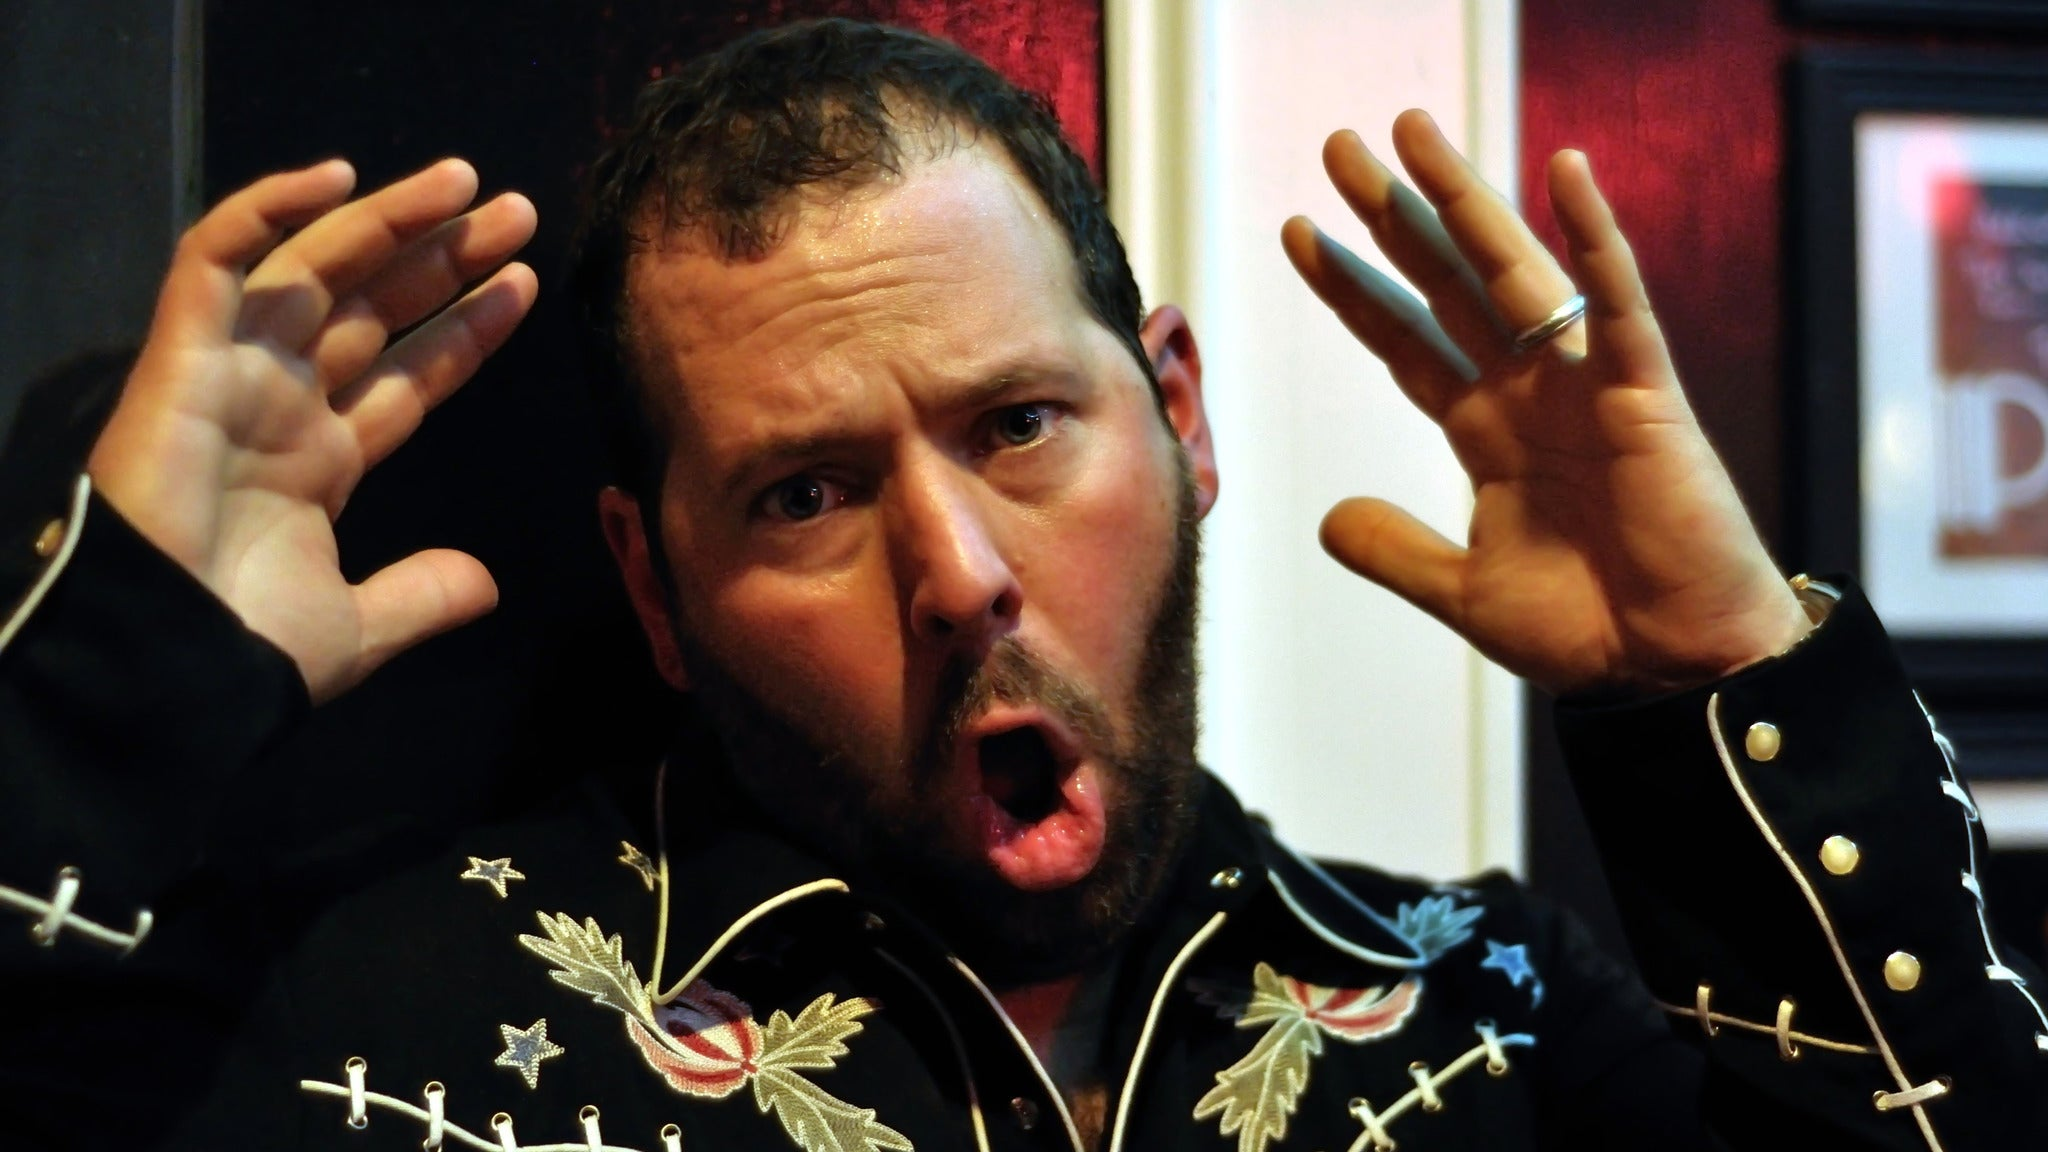 Bert Kreischer at Chicago Improv